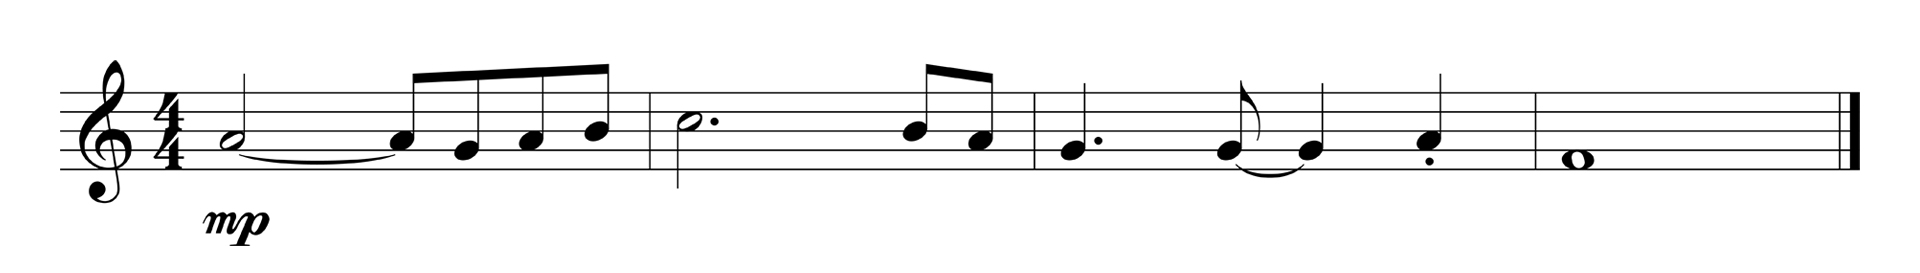 Music arrangement illustrating a circular melodic shape.